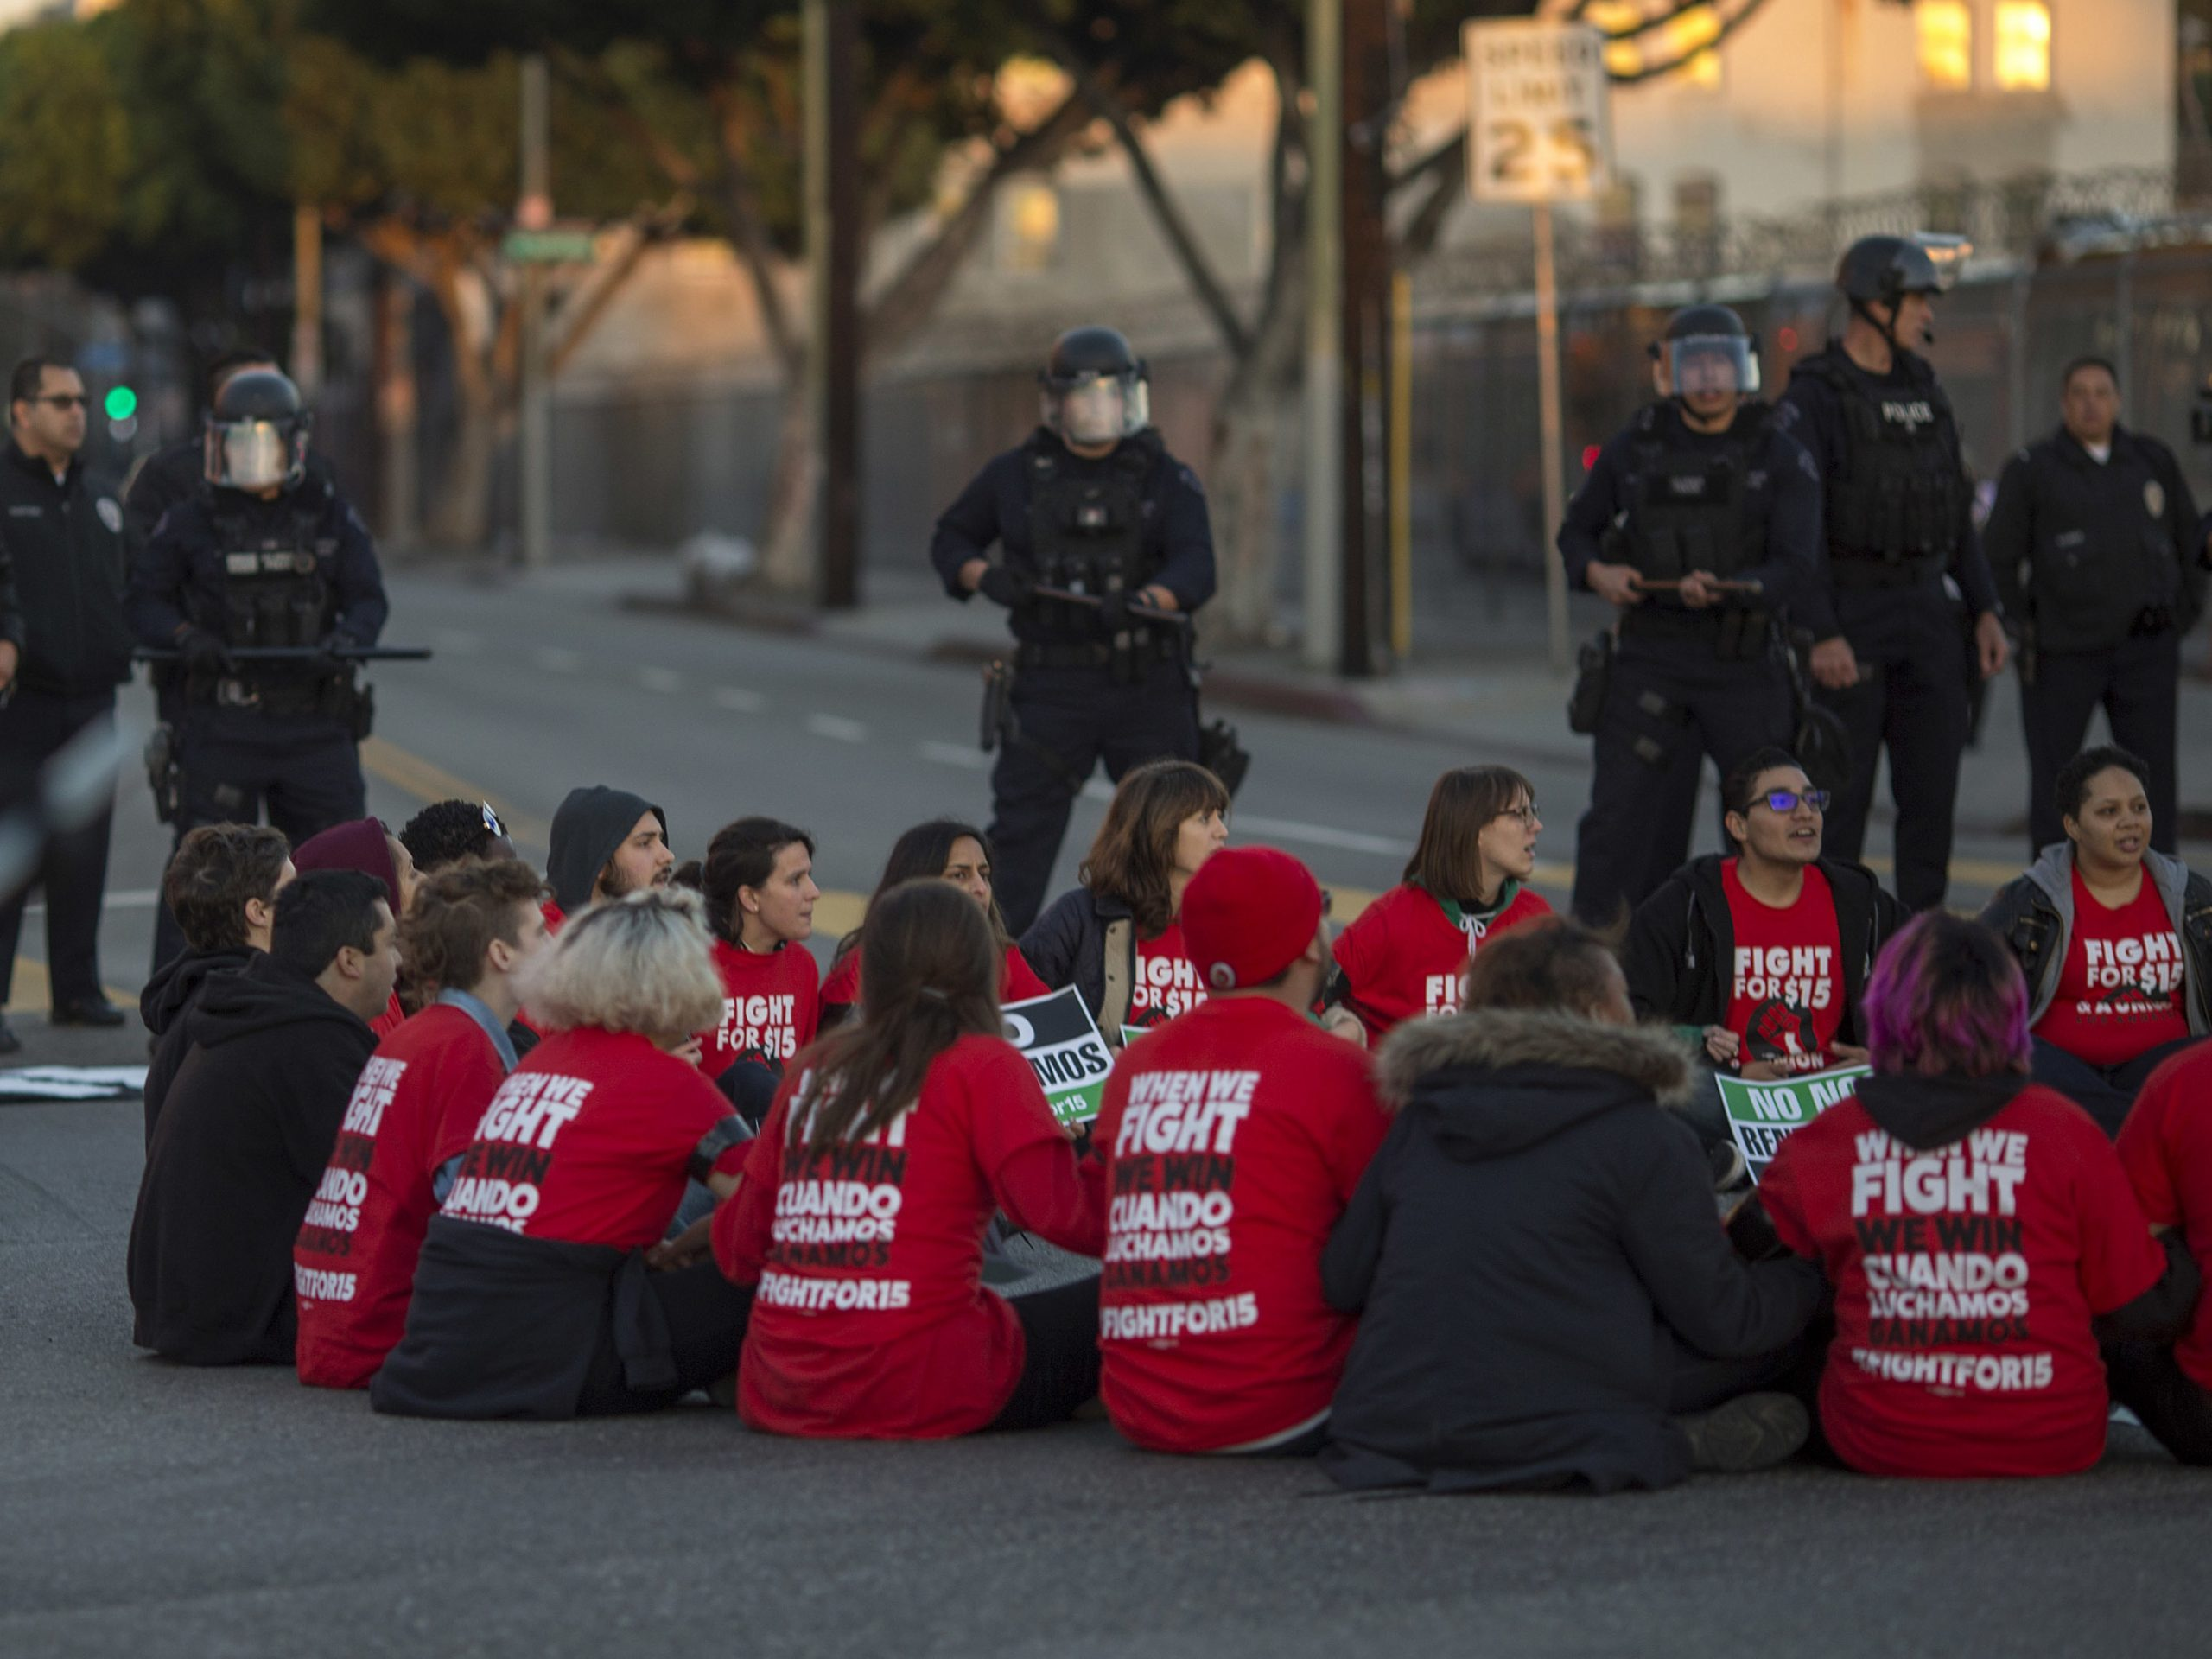 Police surround striking McDonald's workers sitting in an intersection in Los Angeles, demanding a $15 per hour wage and union rights during nationwide 'Fight for $15 Day of Disruption' in November 2016.